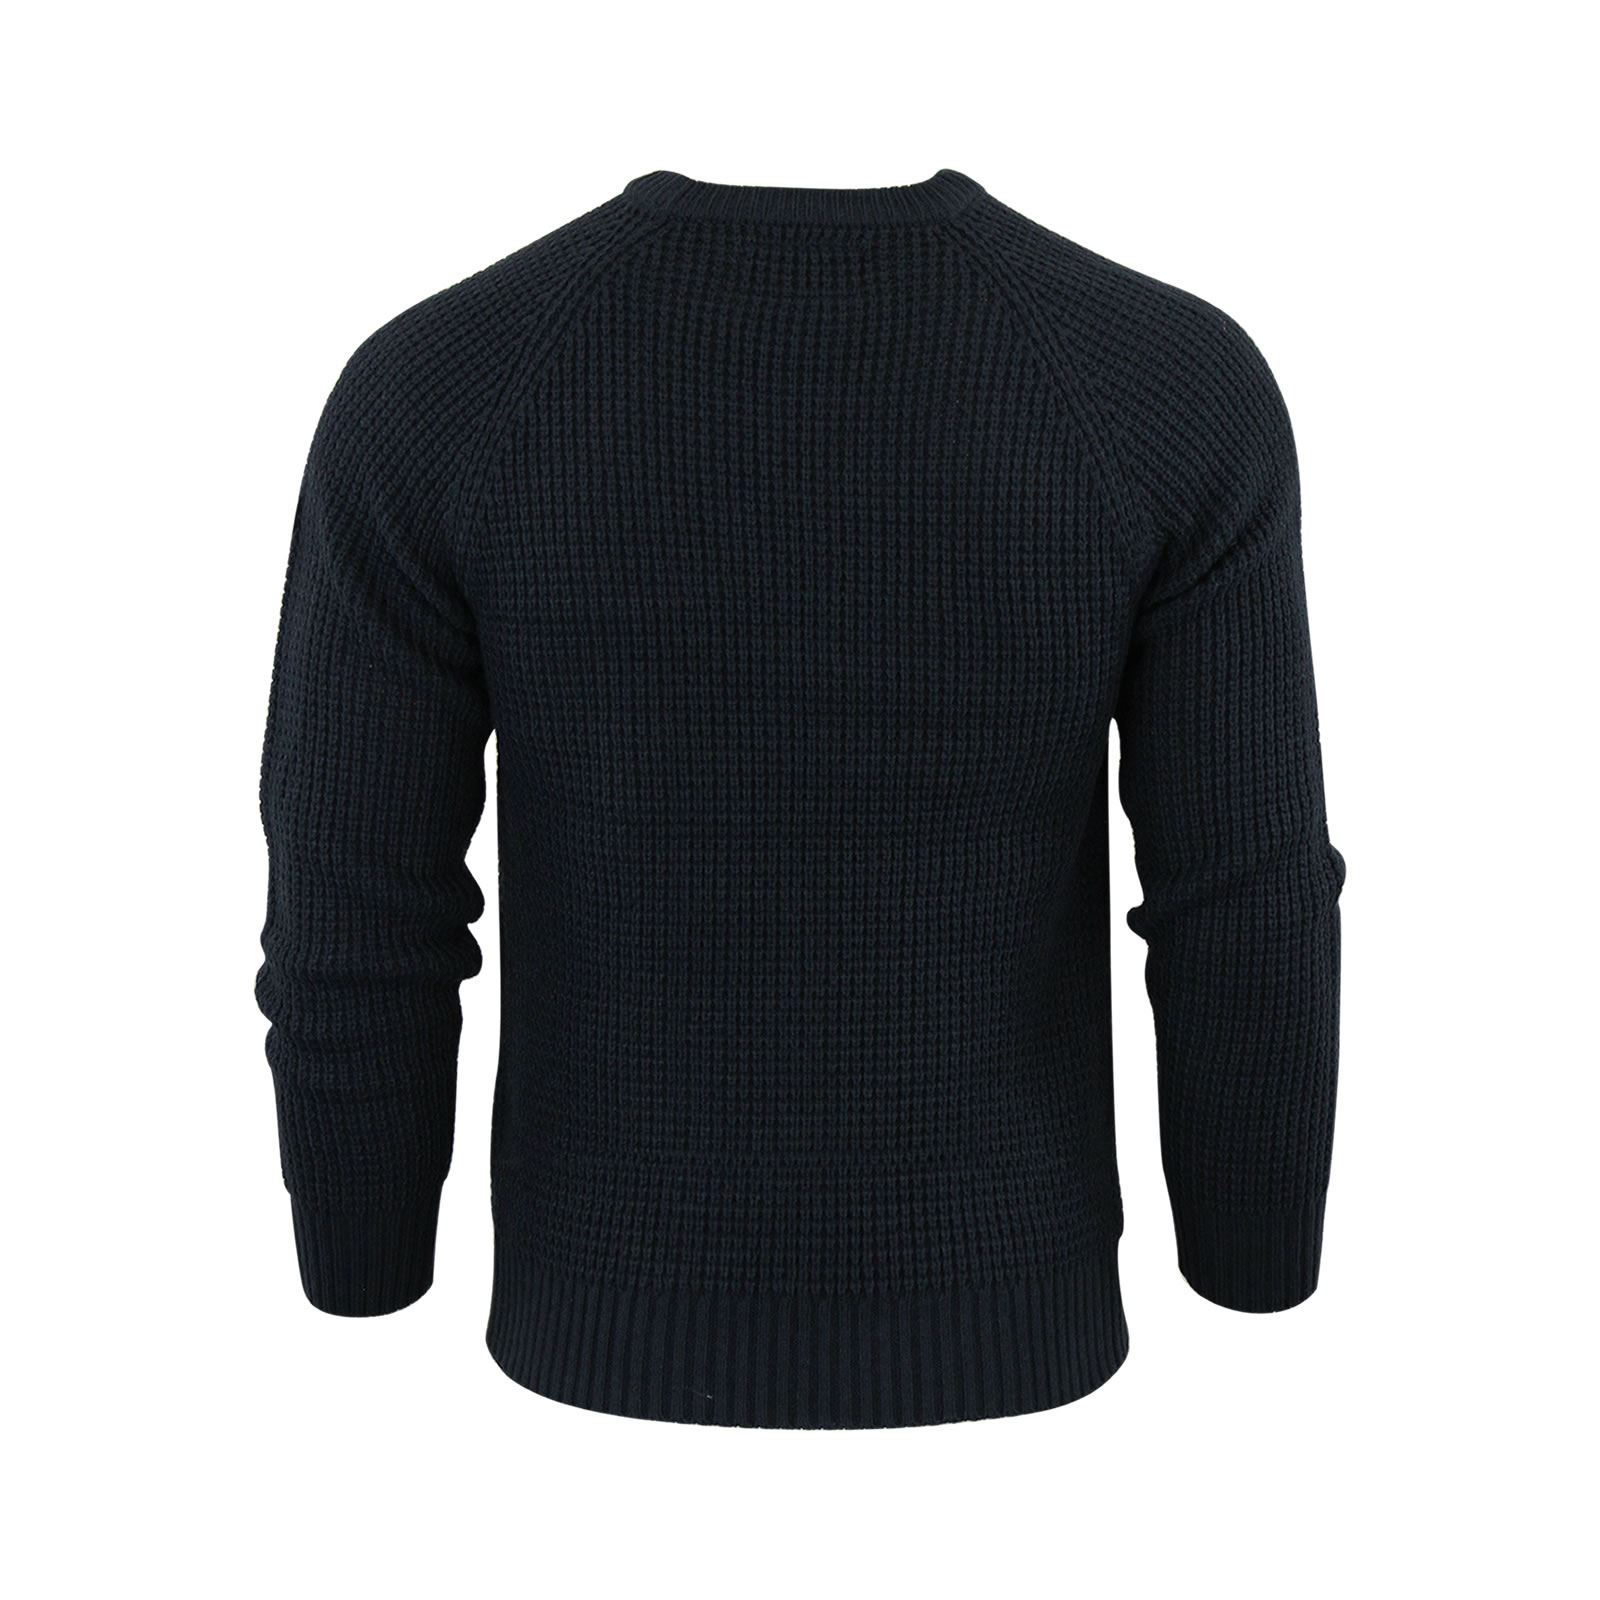 Mens-Jumper-Crosshatch-General-Waffle-Knitted-Crew-Neck-Wool-Mix-Sweater thumbnail 17